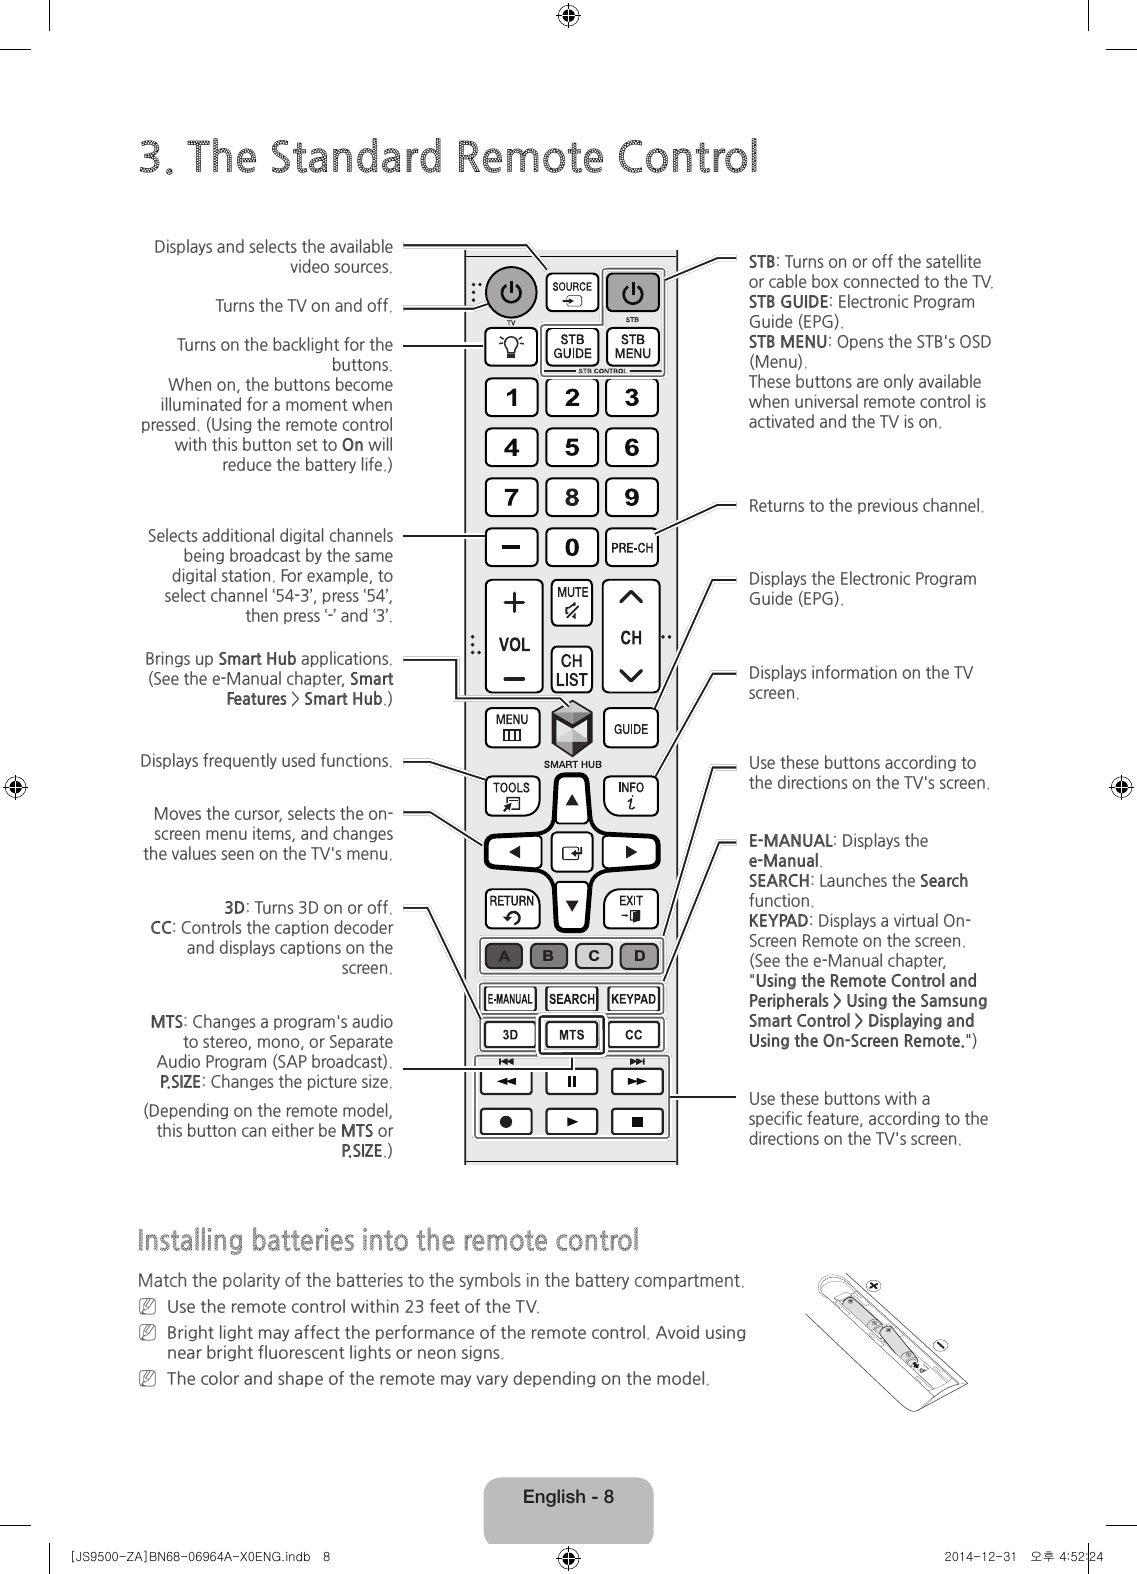 Samsung Electronics Co RMCTPJ Smart control User Manual